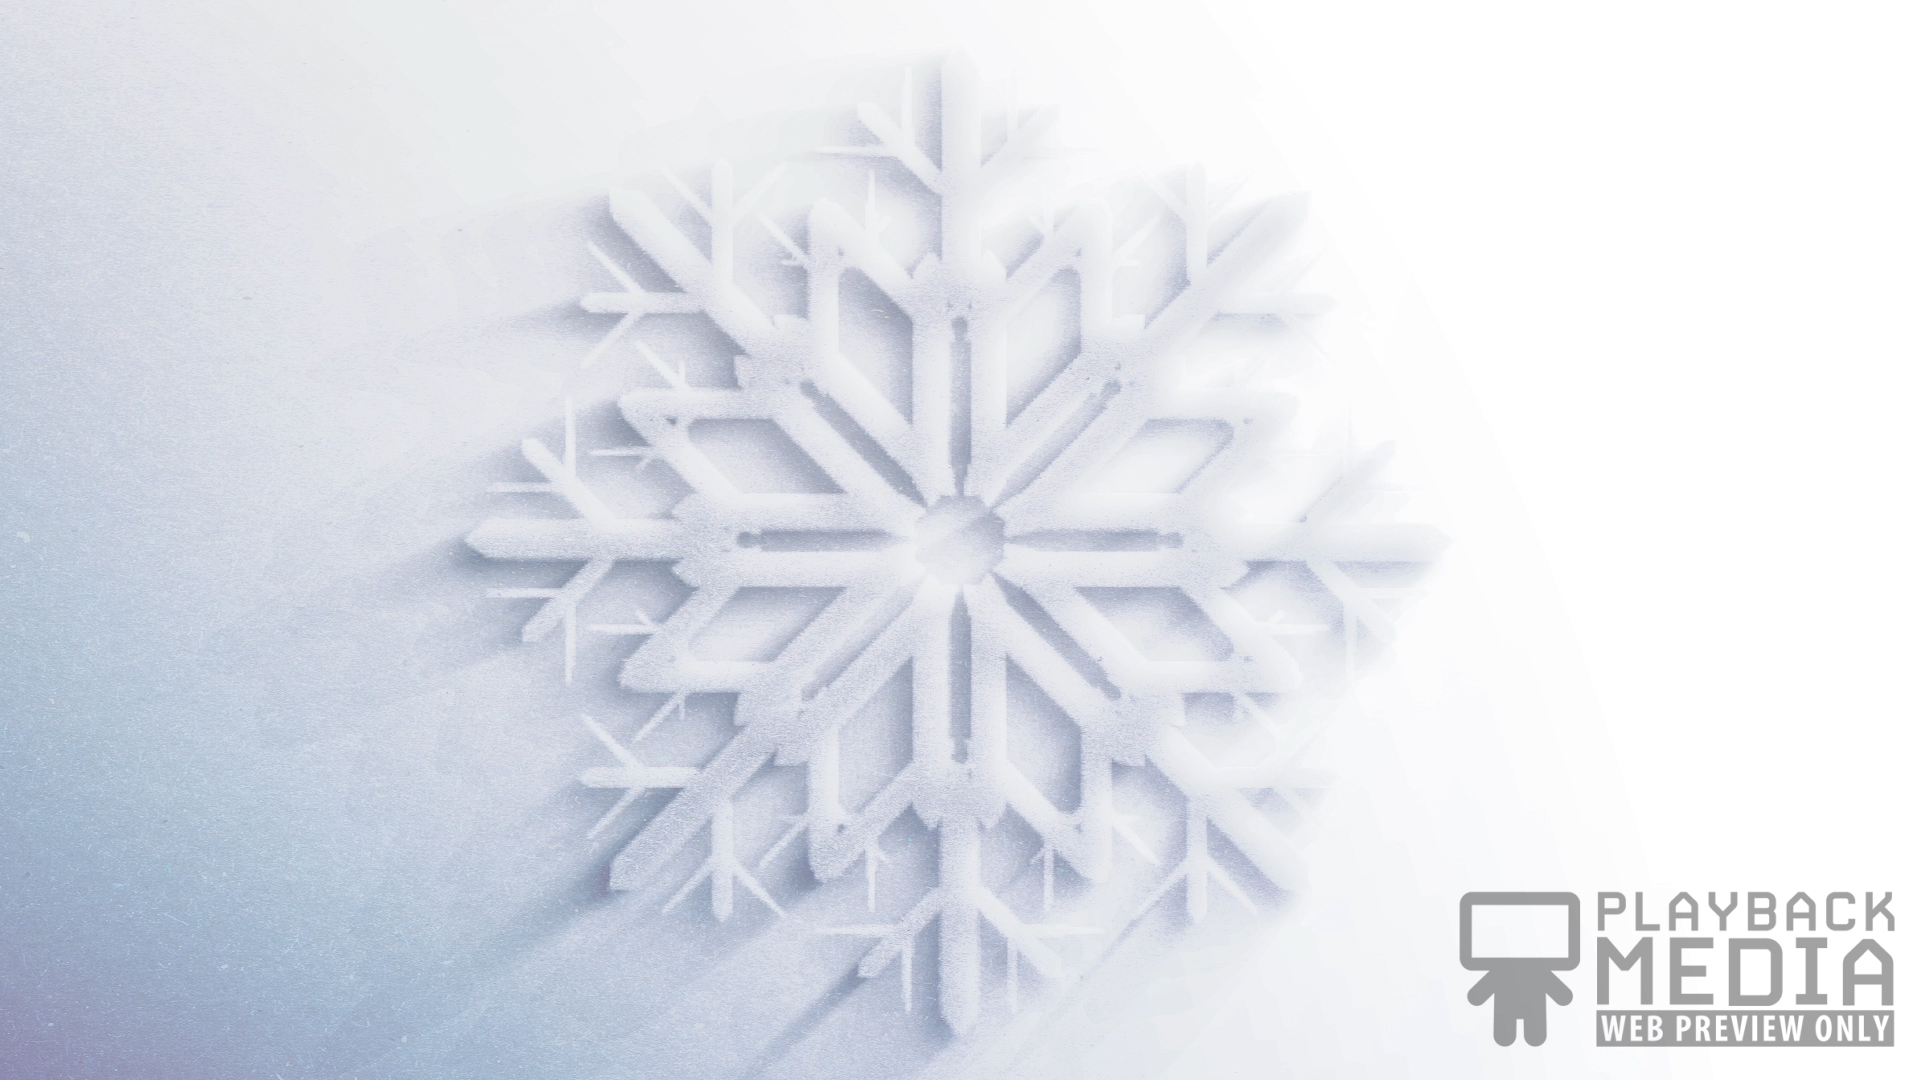 Frosted Snowflake 1 Motion Image